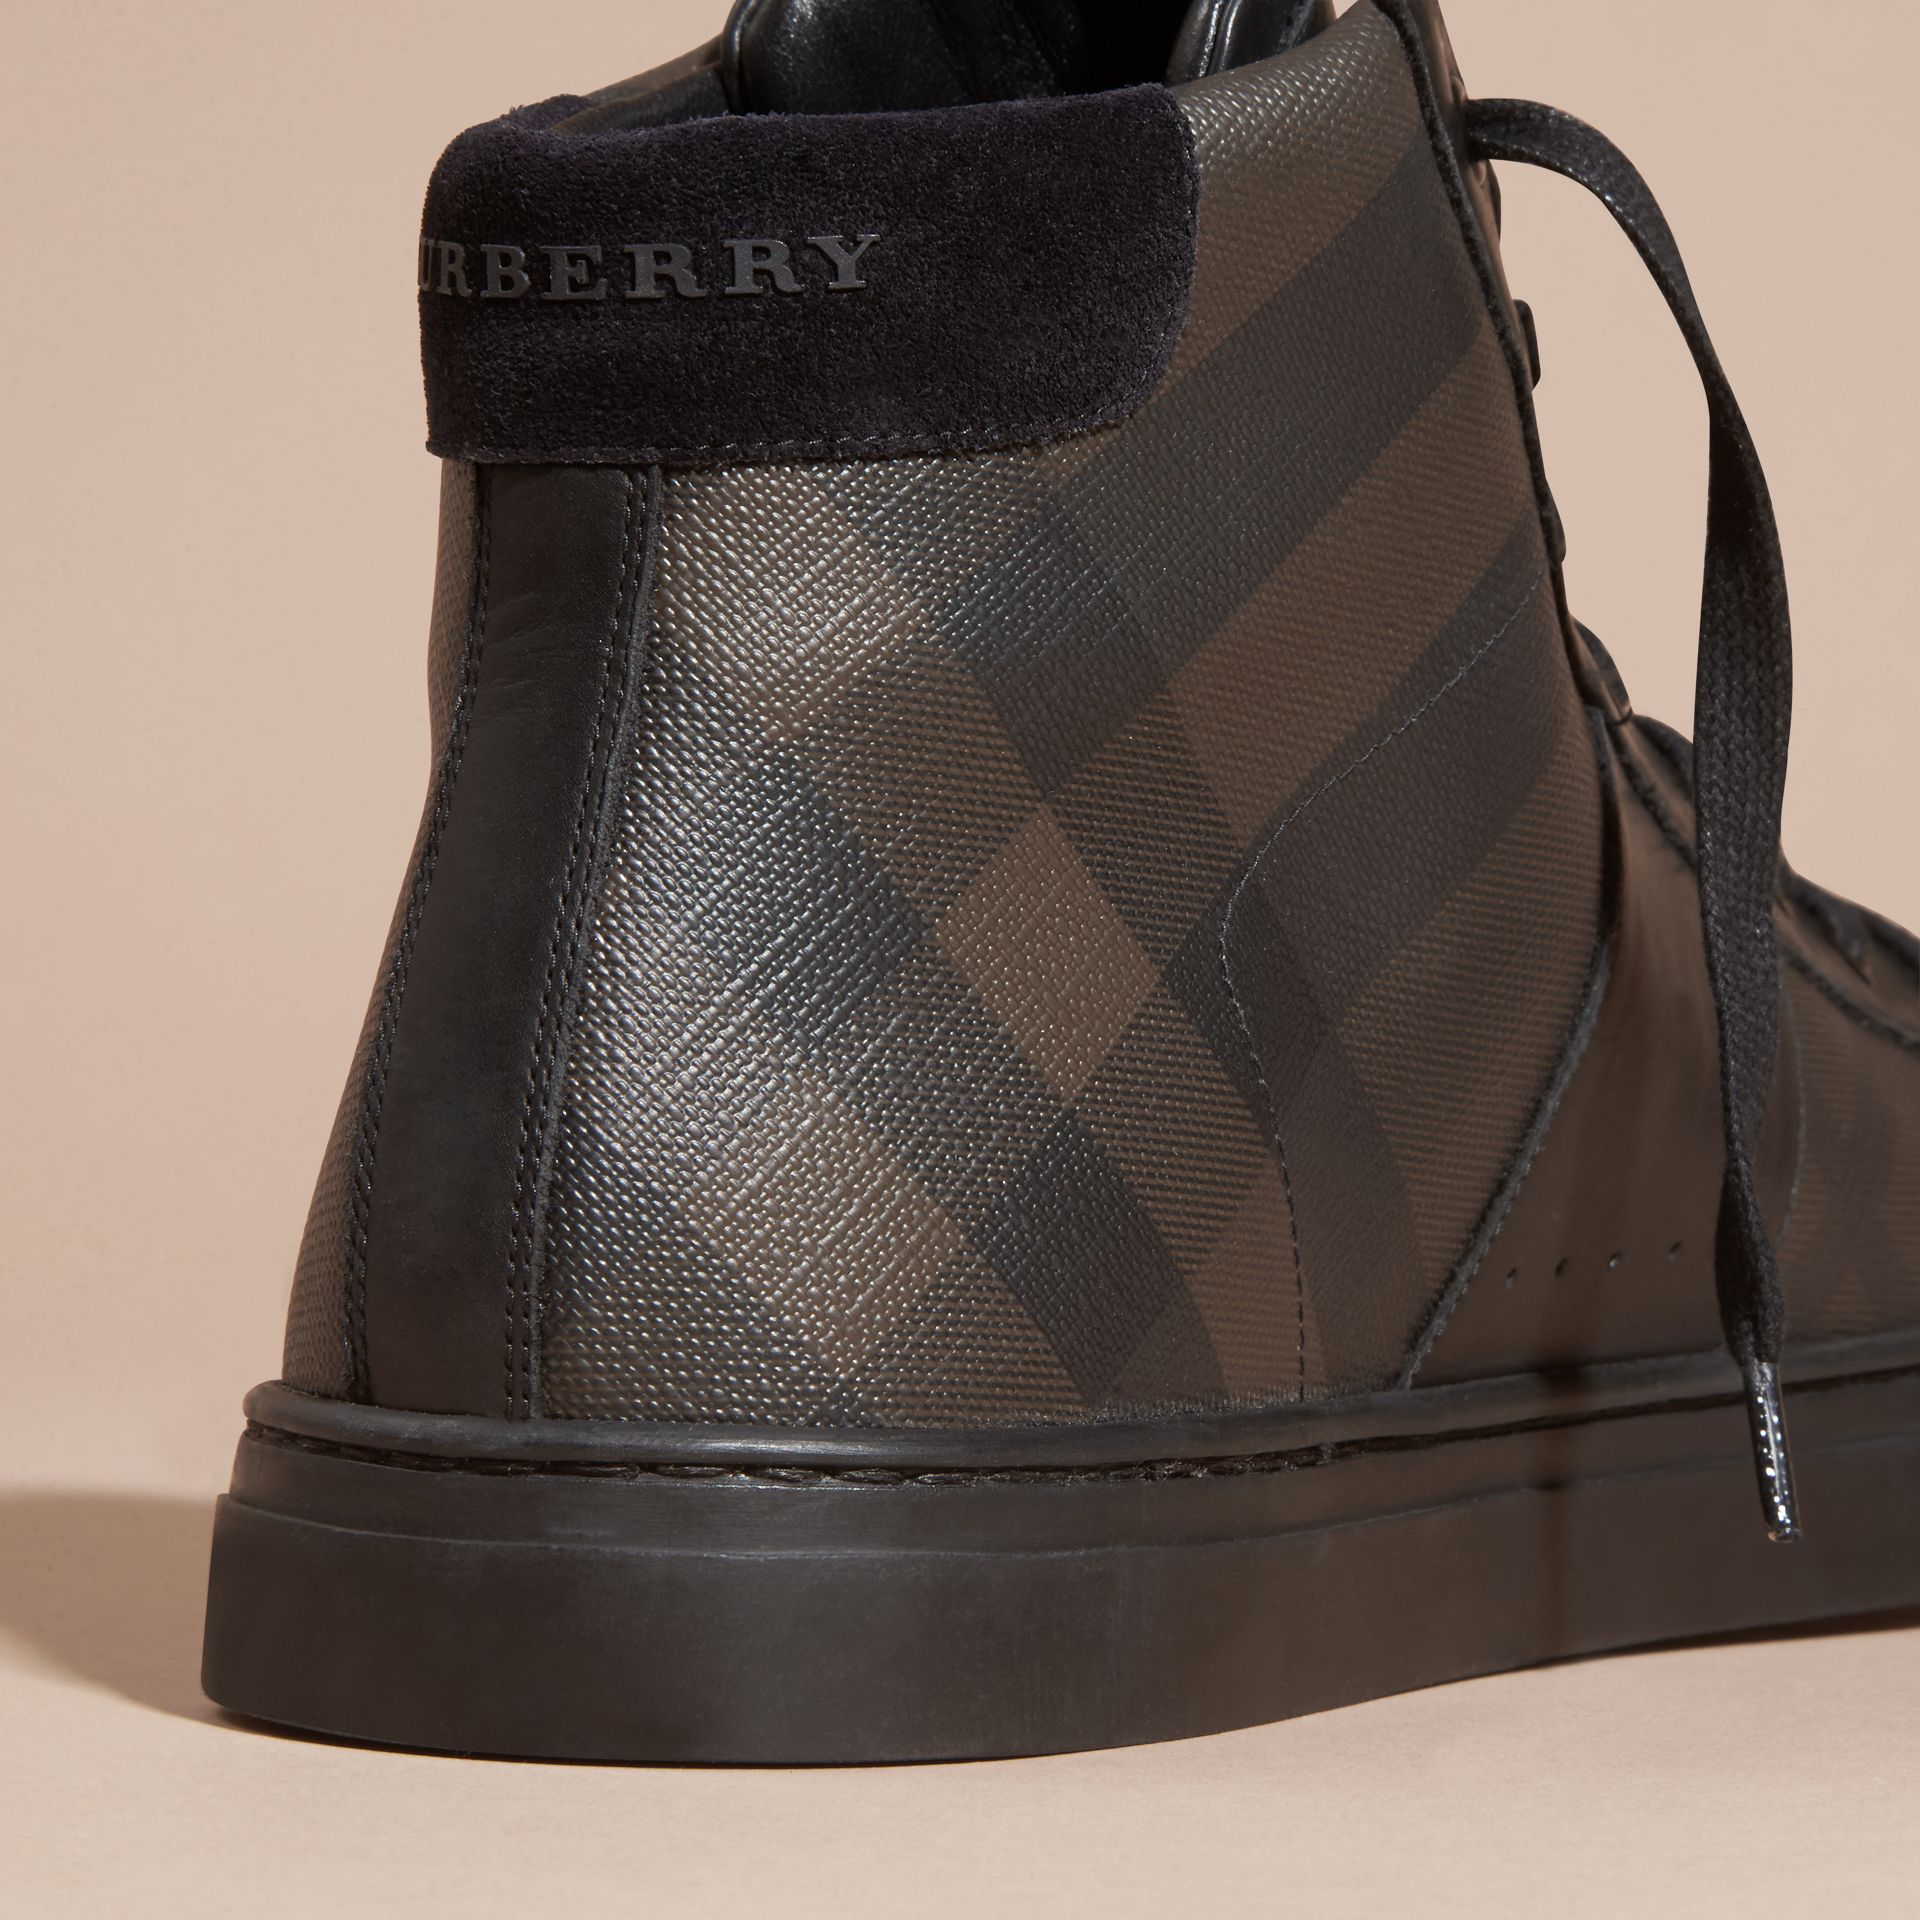 London Check and Leather High-Top Trainers in Smoked Chocolate - Men | Burberry Canada - gallery image 2